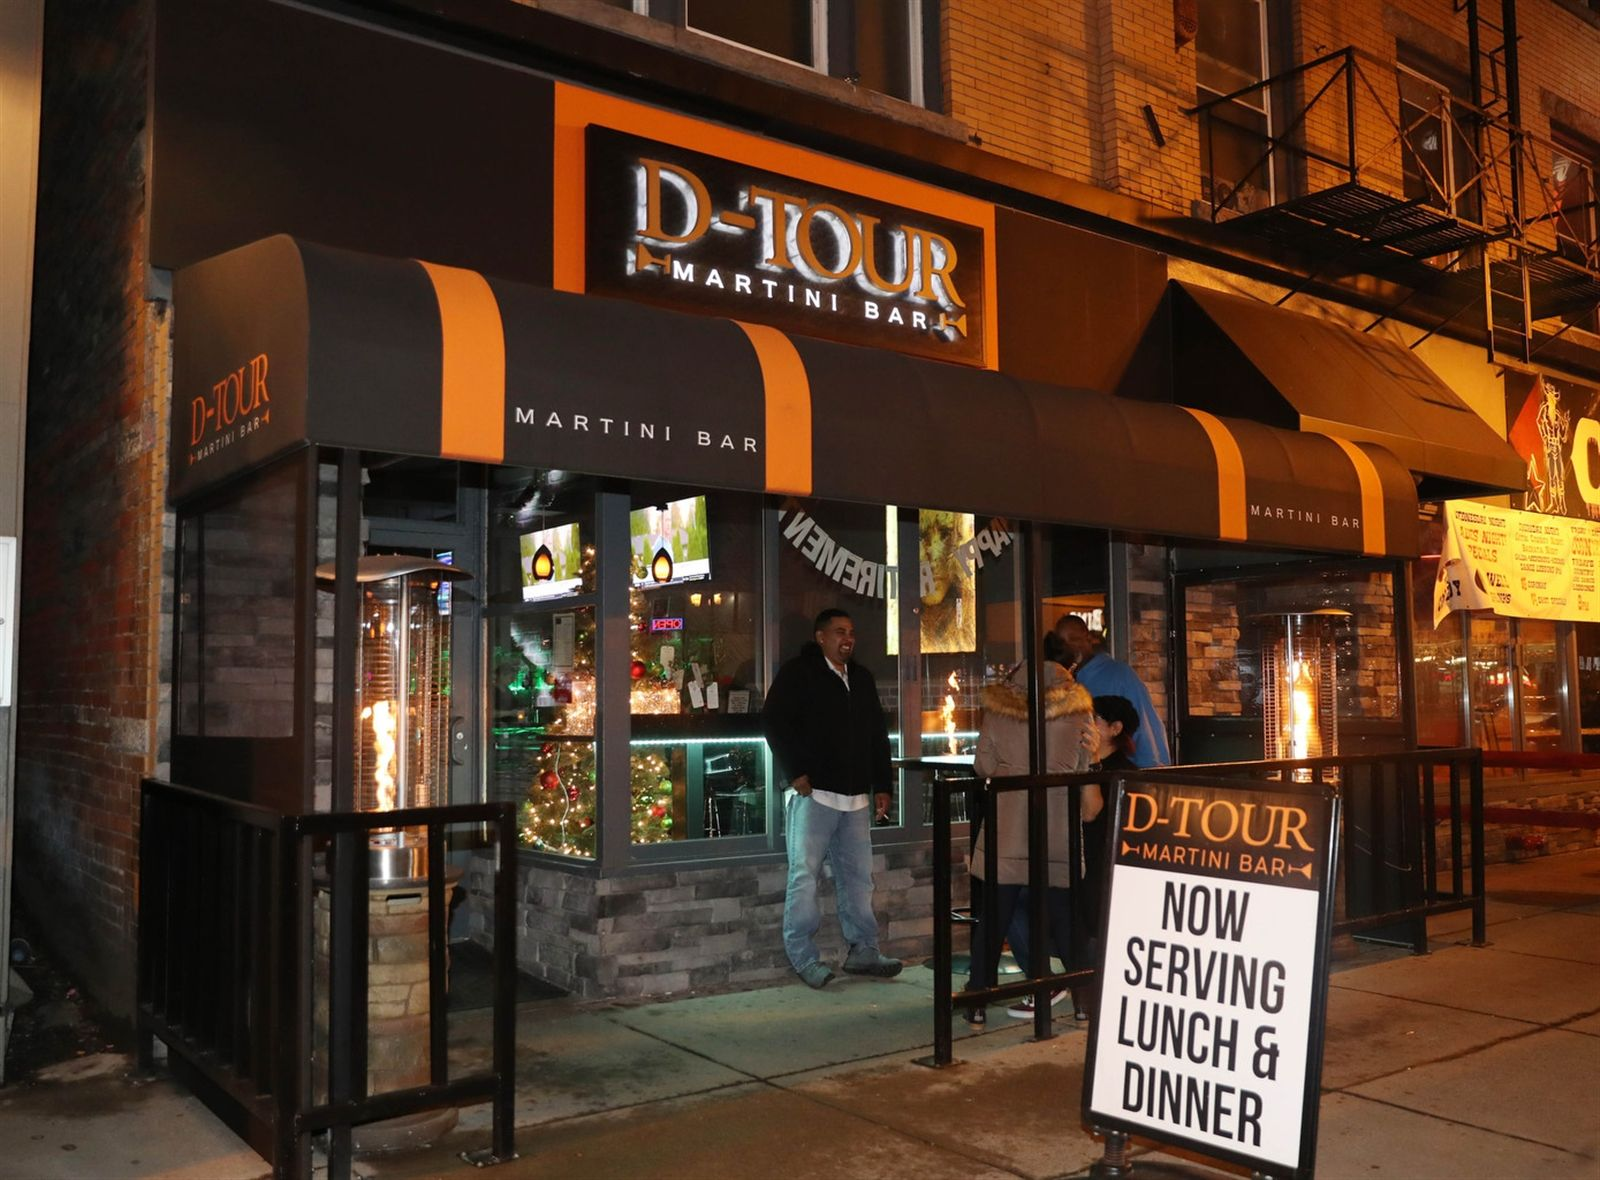 D-Tour Martini Bar is at 49 W. Chippewa St. in Buffalo.